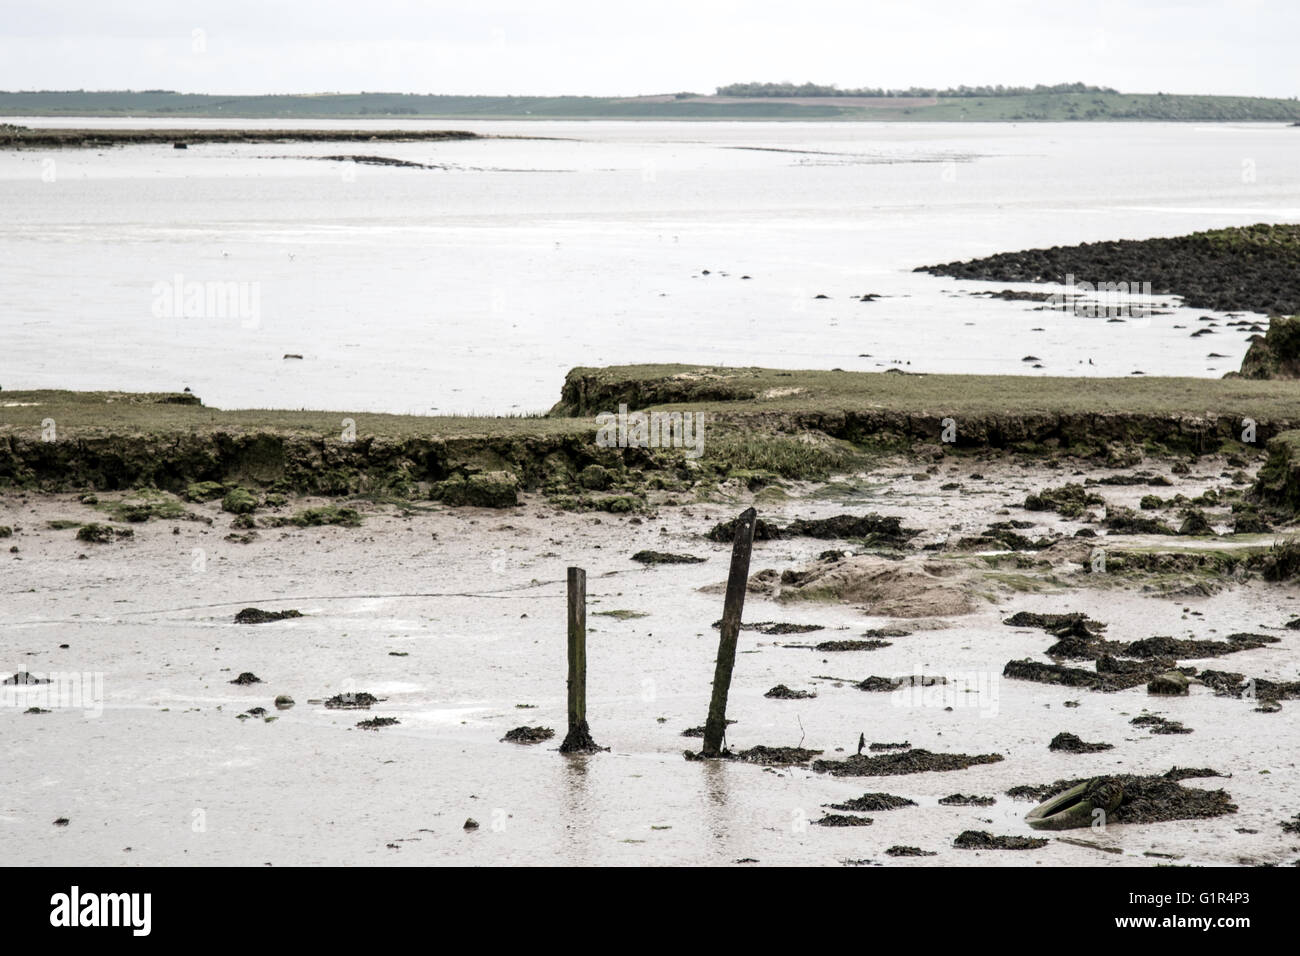 Wooden posts sticking out of mud at low tide, River Swale, north Kent - Stock Image